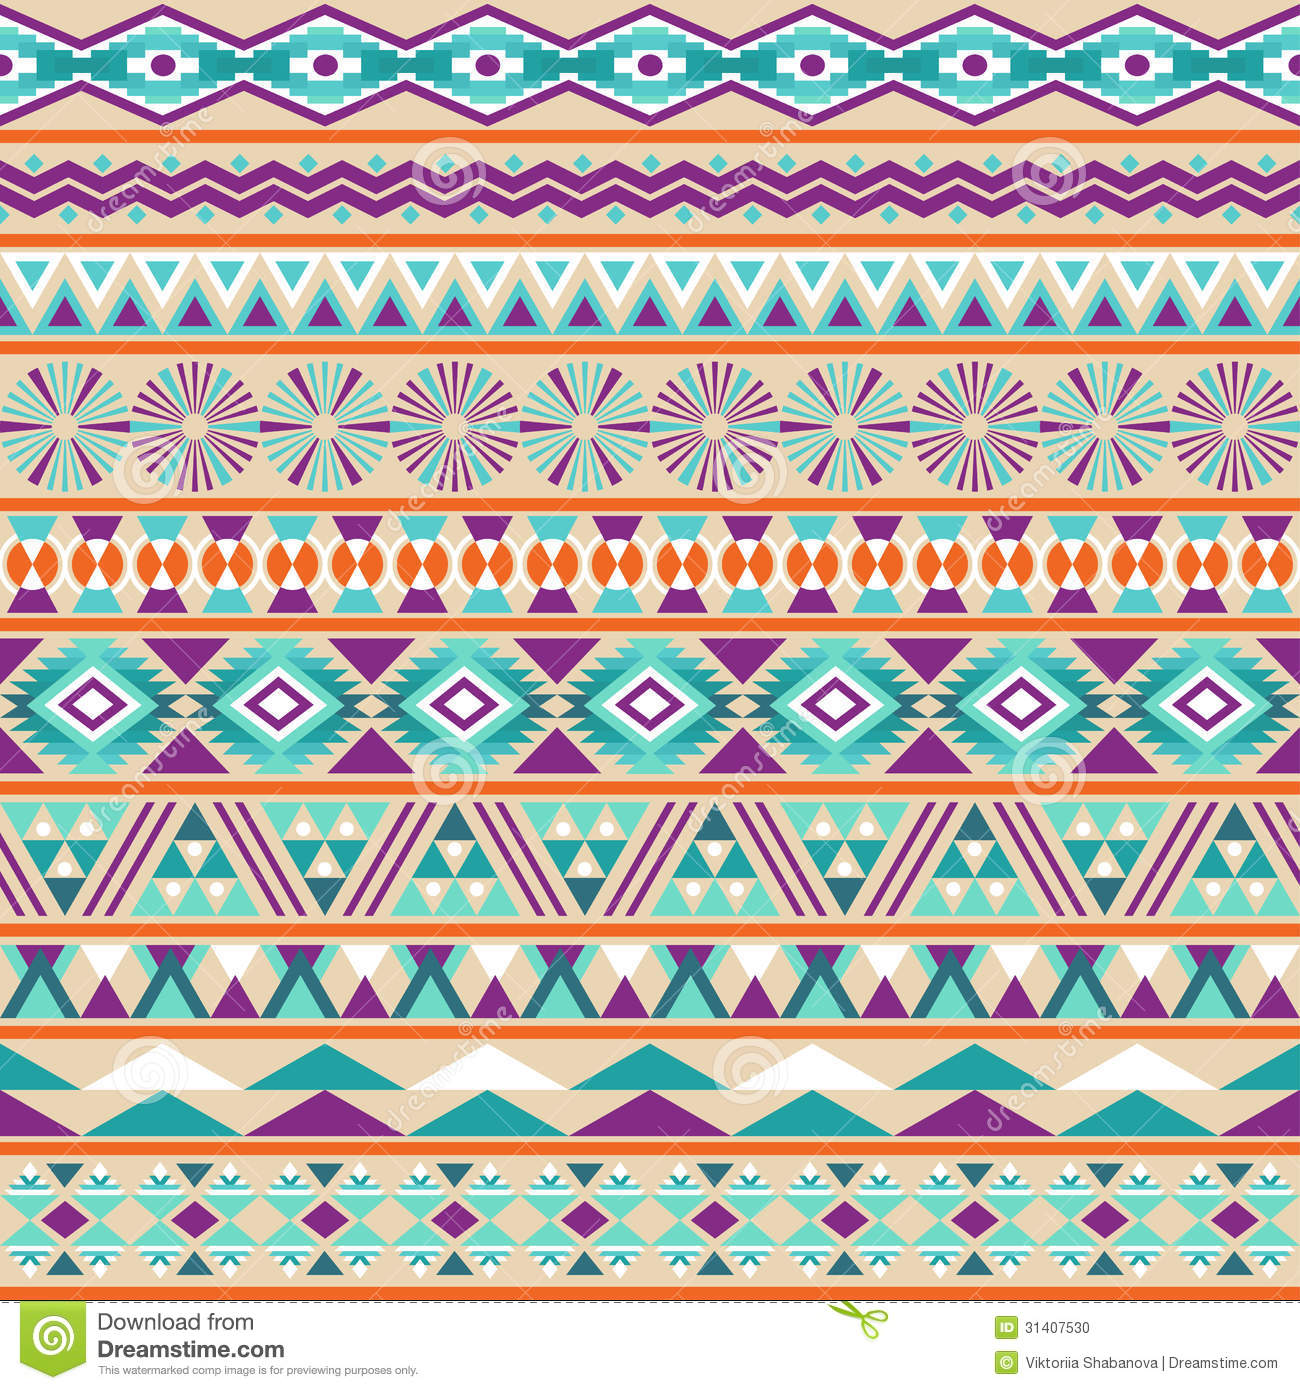 Tribal iphone wallpaper tumblr - Cute Tribal Pattern Backgrounds Images Pictures Becuo